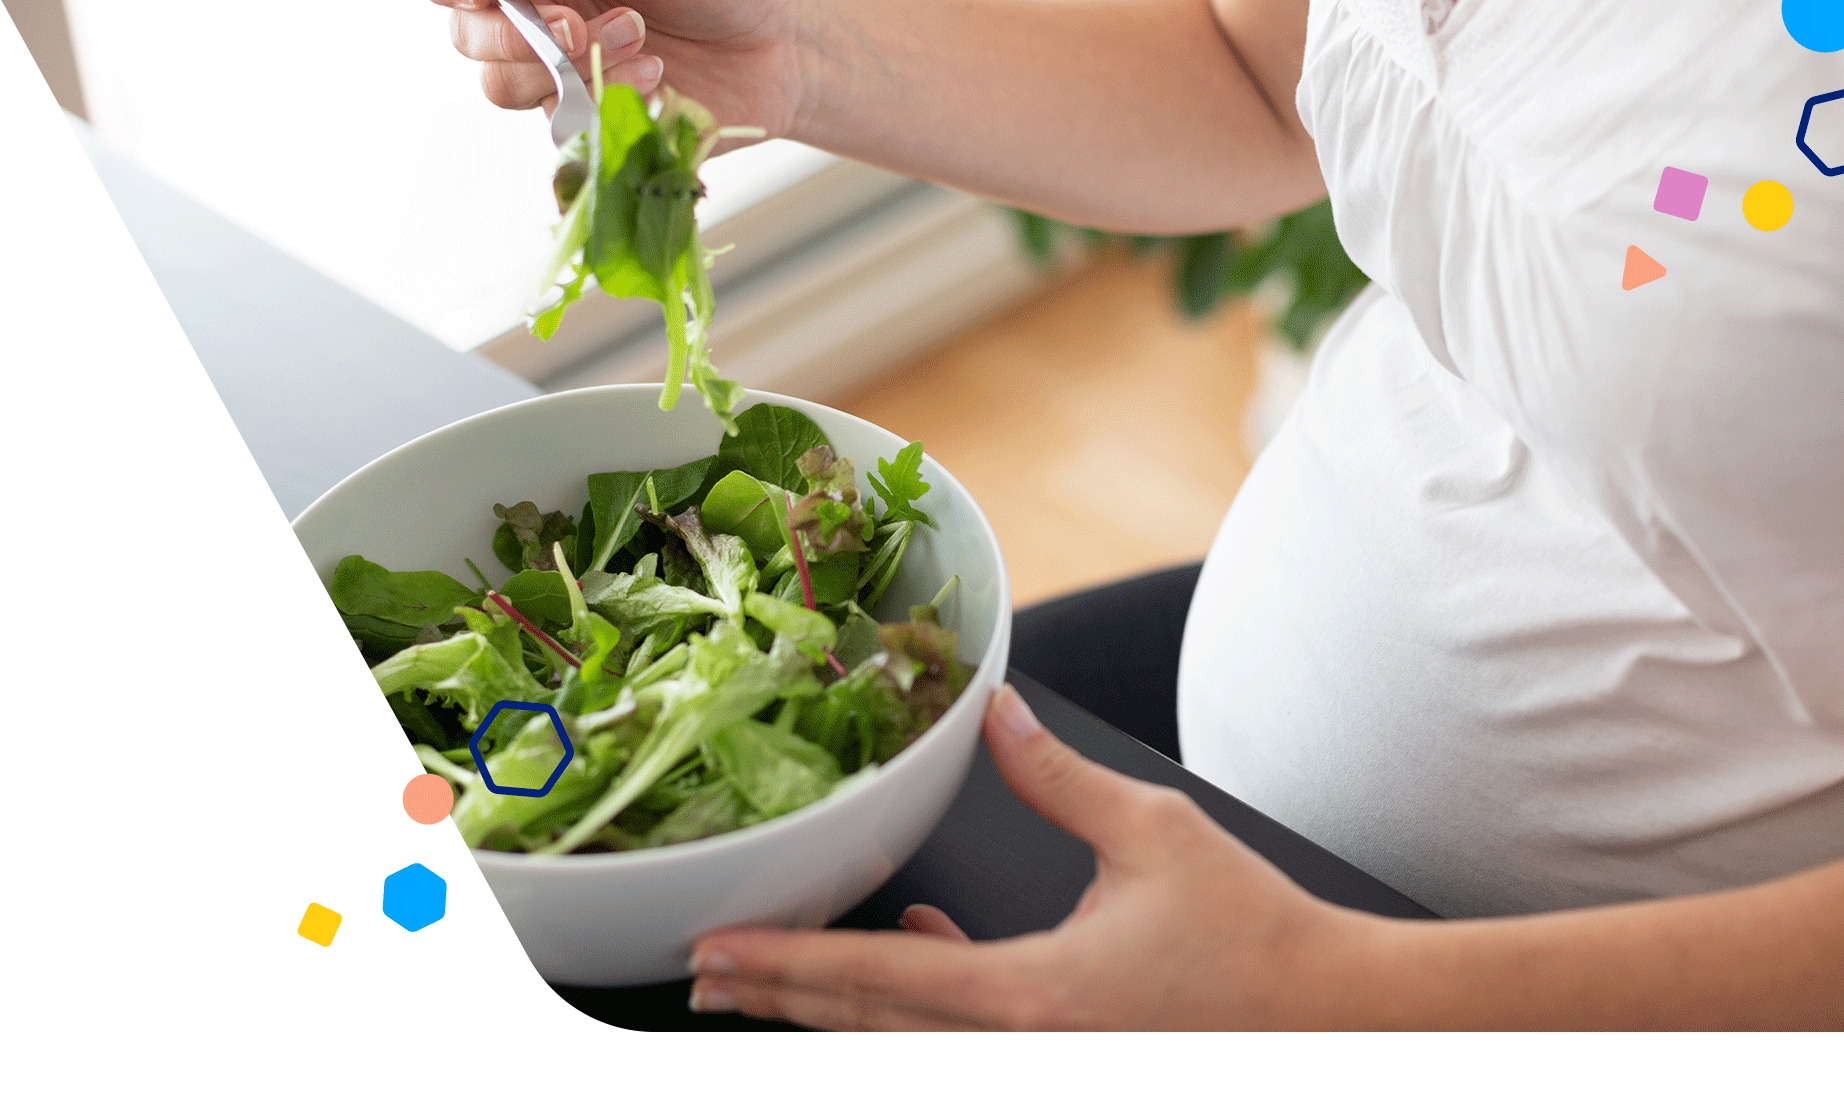 pregnancy-nutrition-second-trimester-pointers